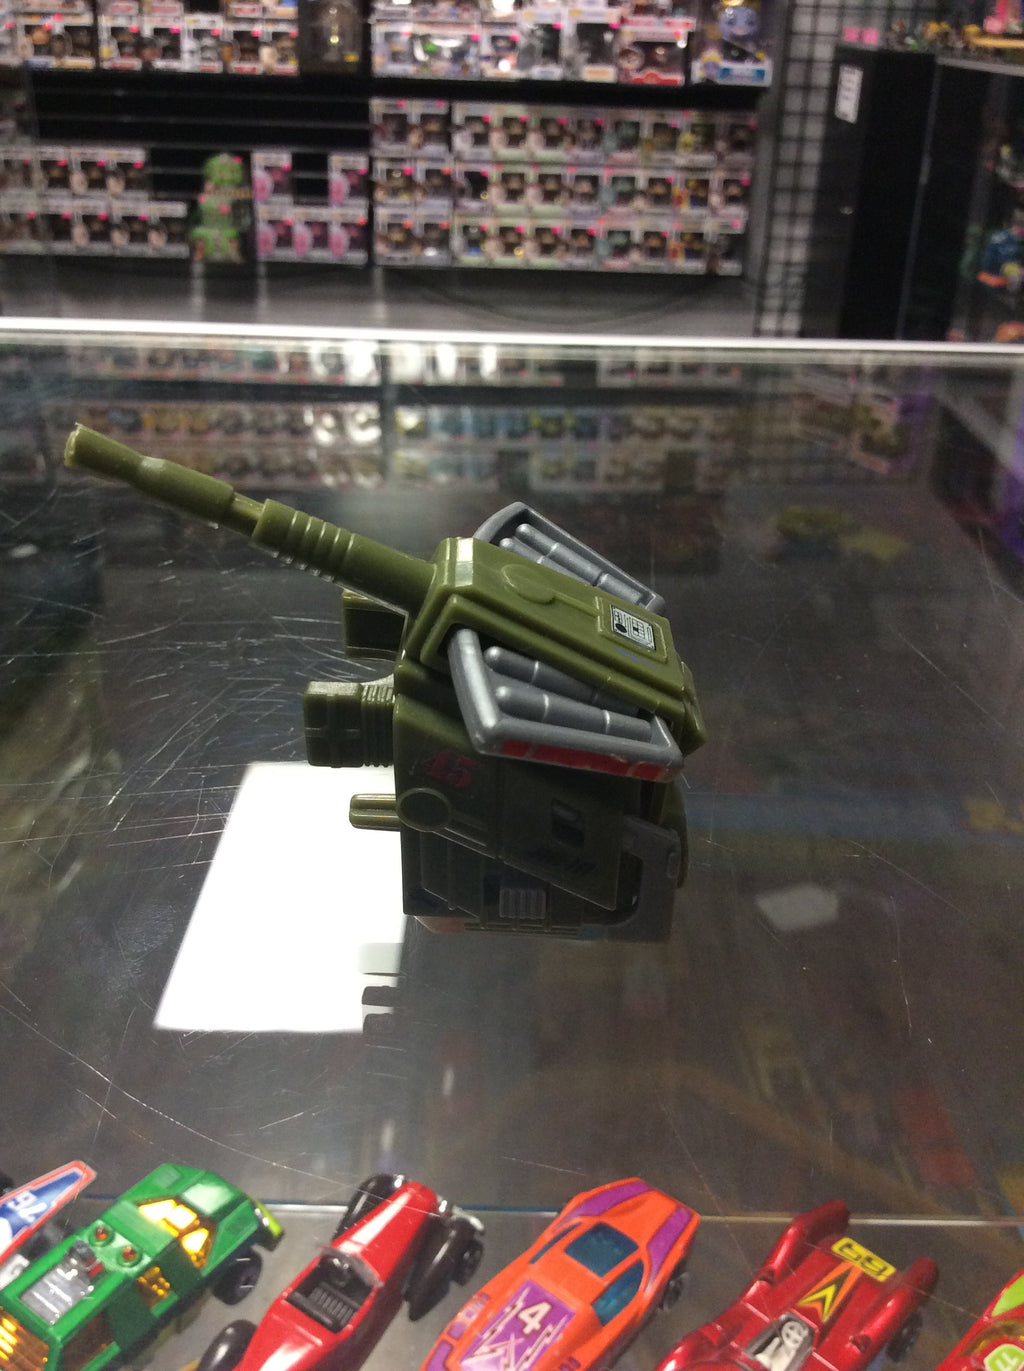 Hasbro G.I. Joe Action Pack Anti-Aircraft Gun